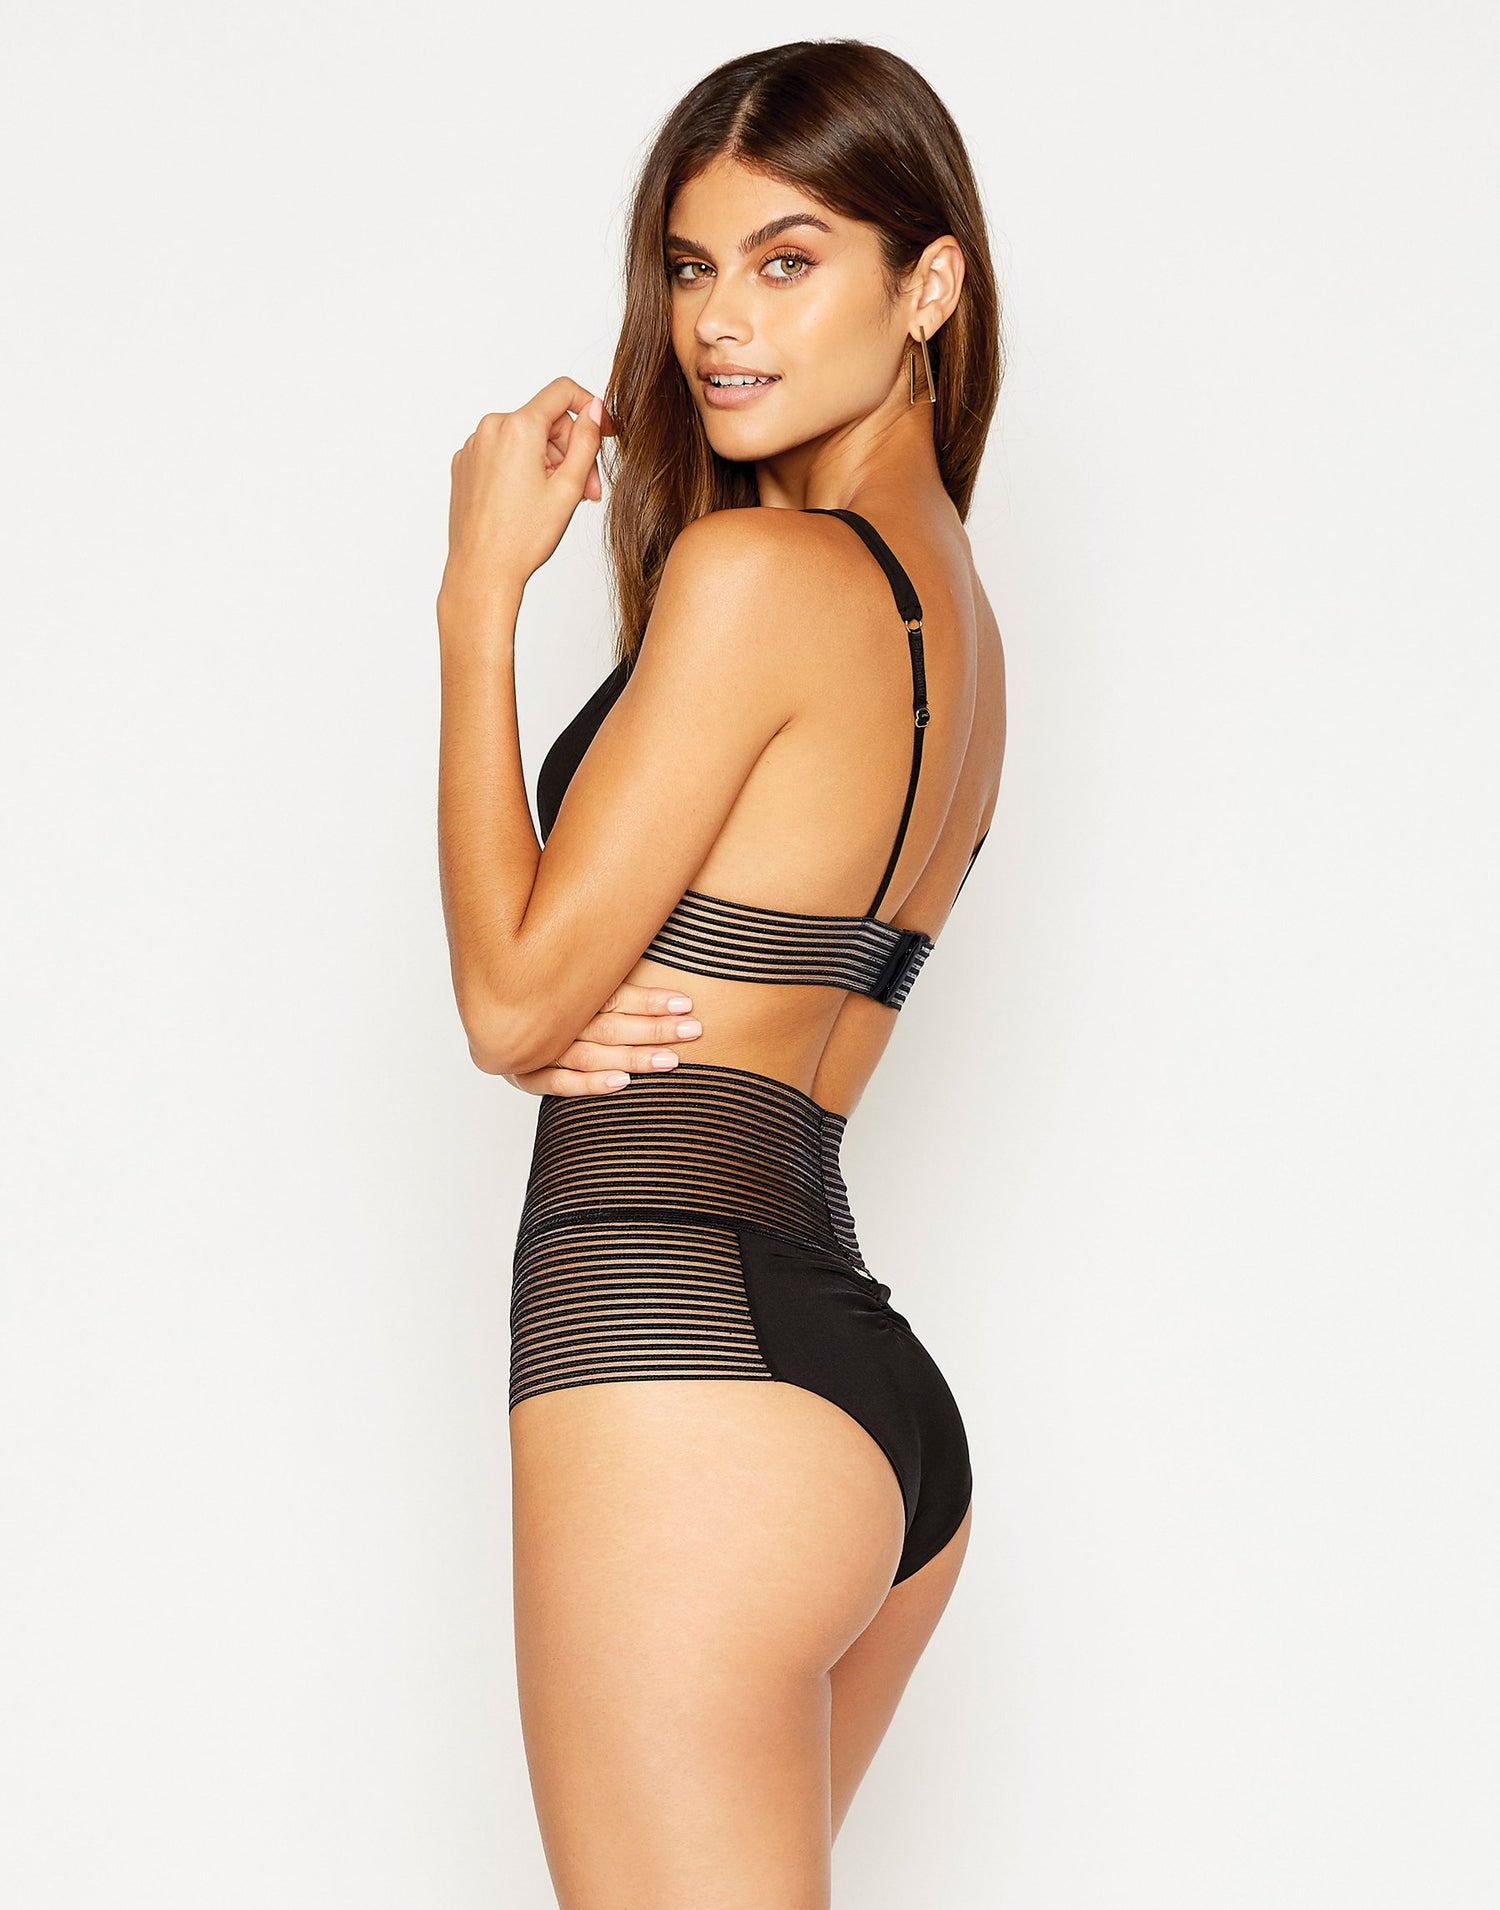 Sheer Addiction High Waist Bikini Bottom in Black with Sheer Elastic Stripes - side view